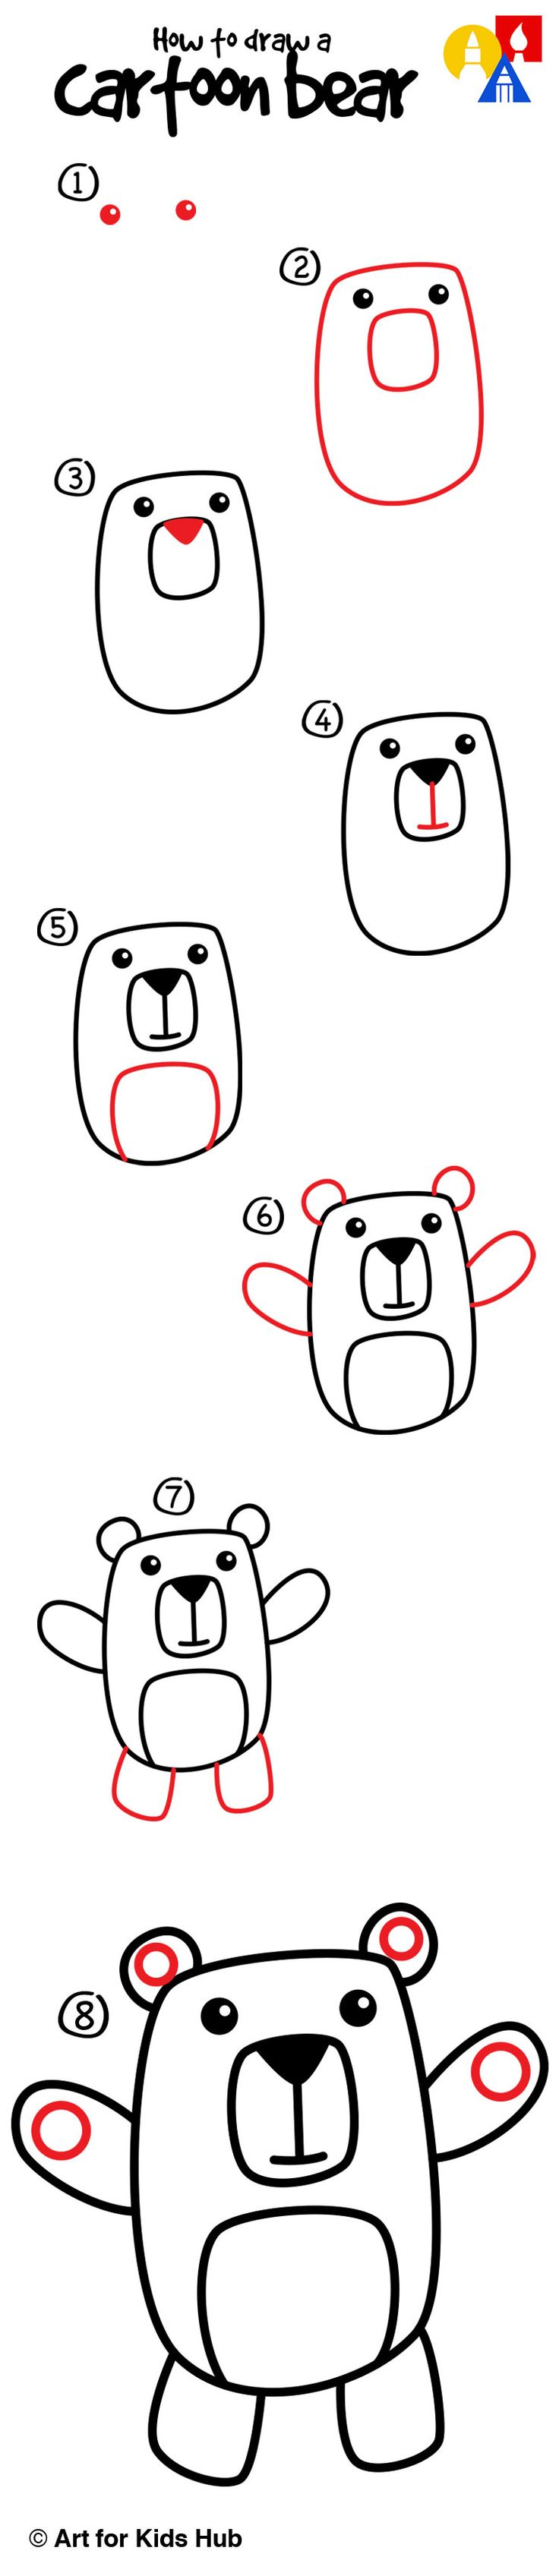 Bathroom drawing for kids - How To Draw A Cartoon Bear For Young Artists Art For Kids Hub